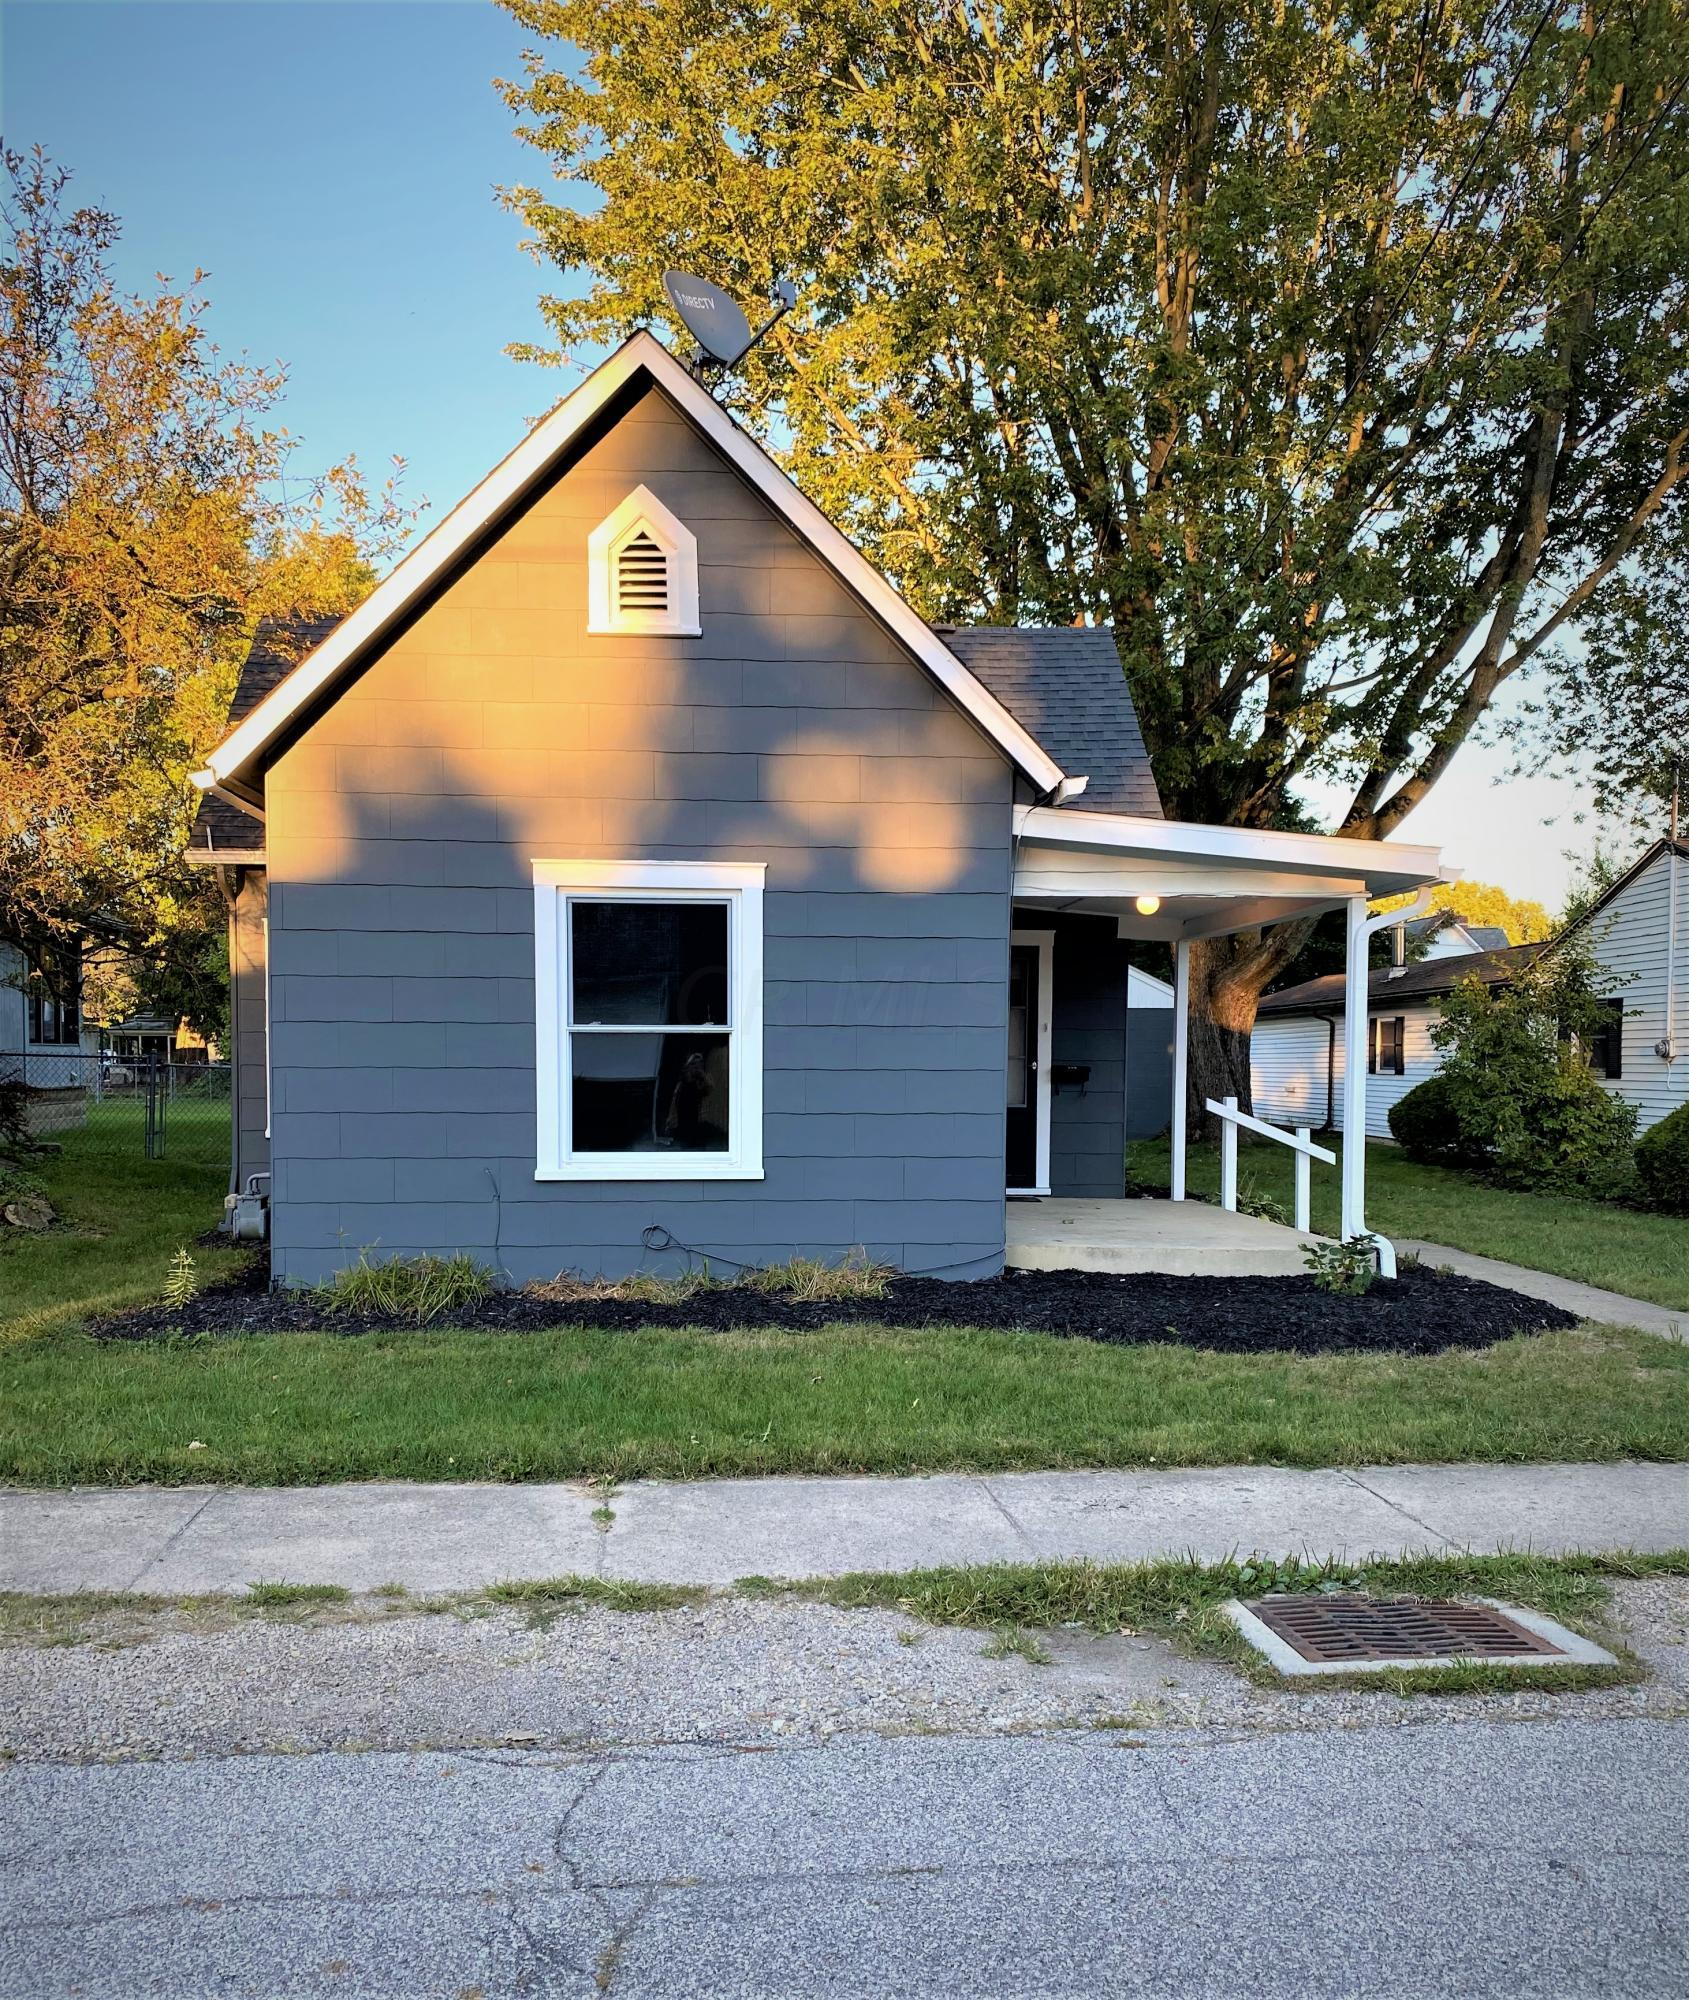 Property for sale at 265 Grant Avenue, Plain City, Ohio 43064